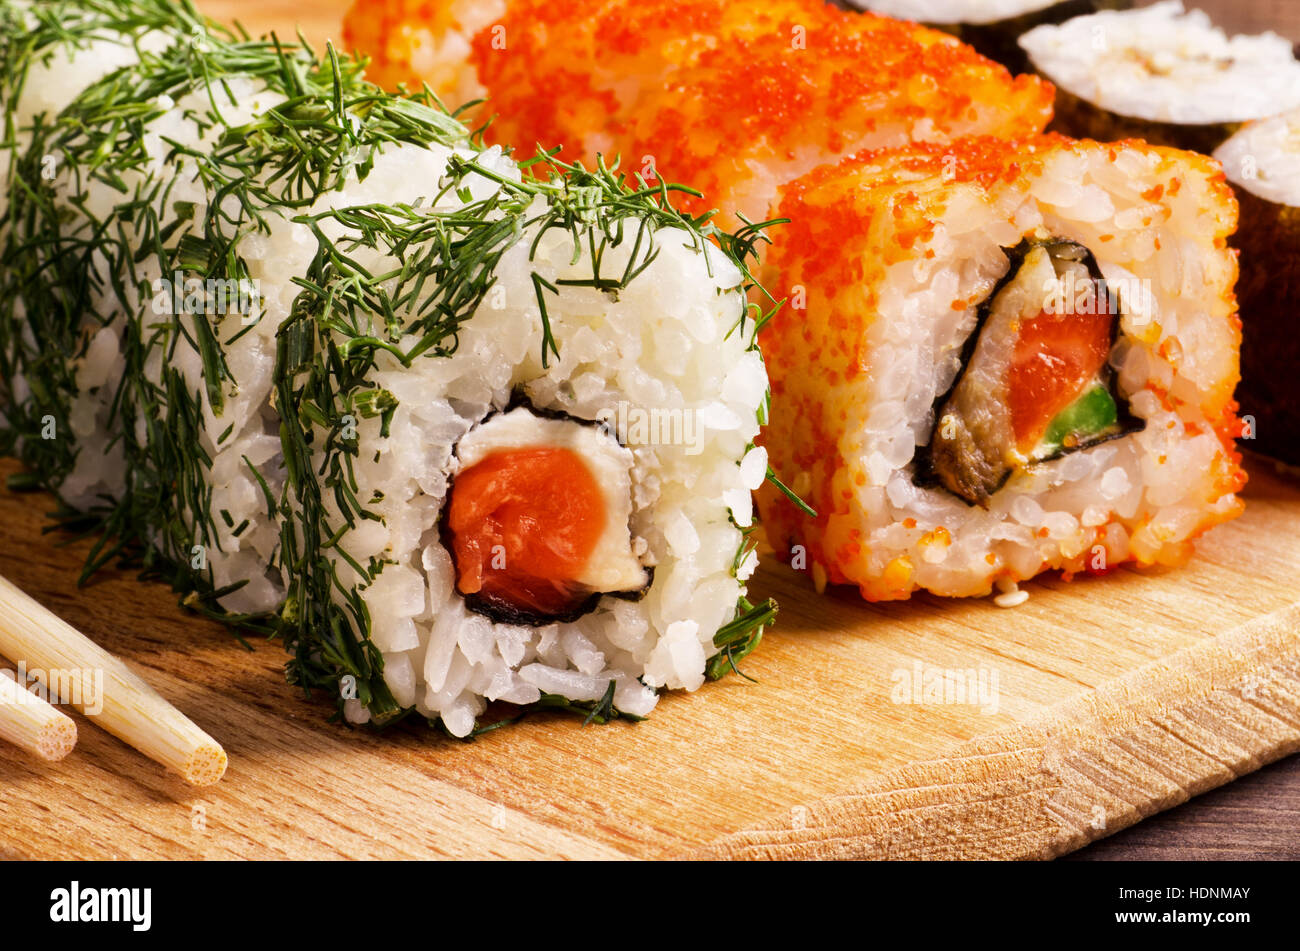 Japanese food, salmon sushi rolls set on a kitchen table with chopsticks - Stock Image